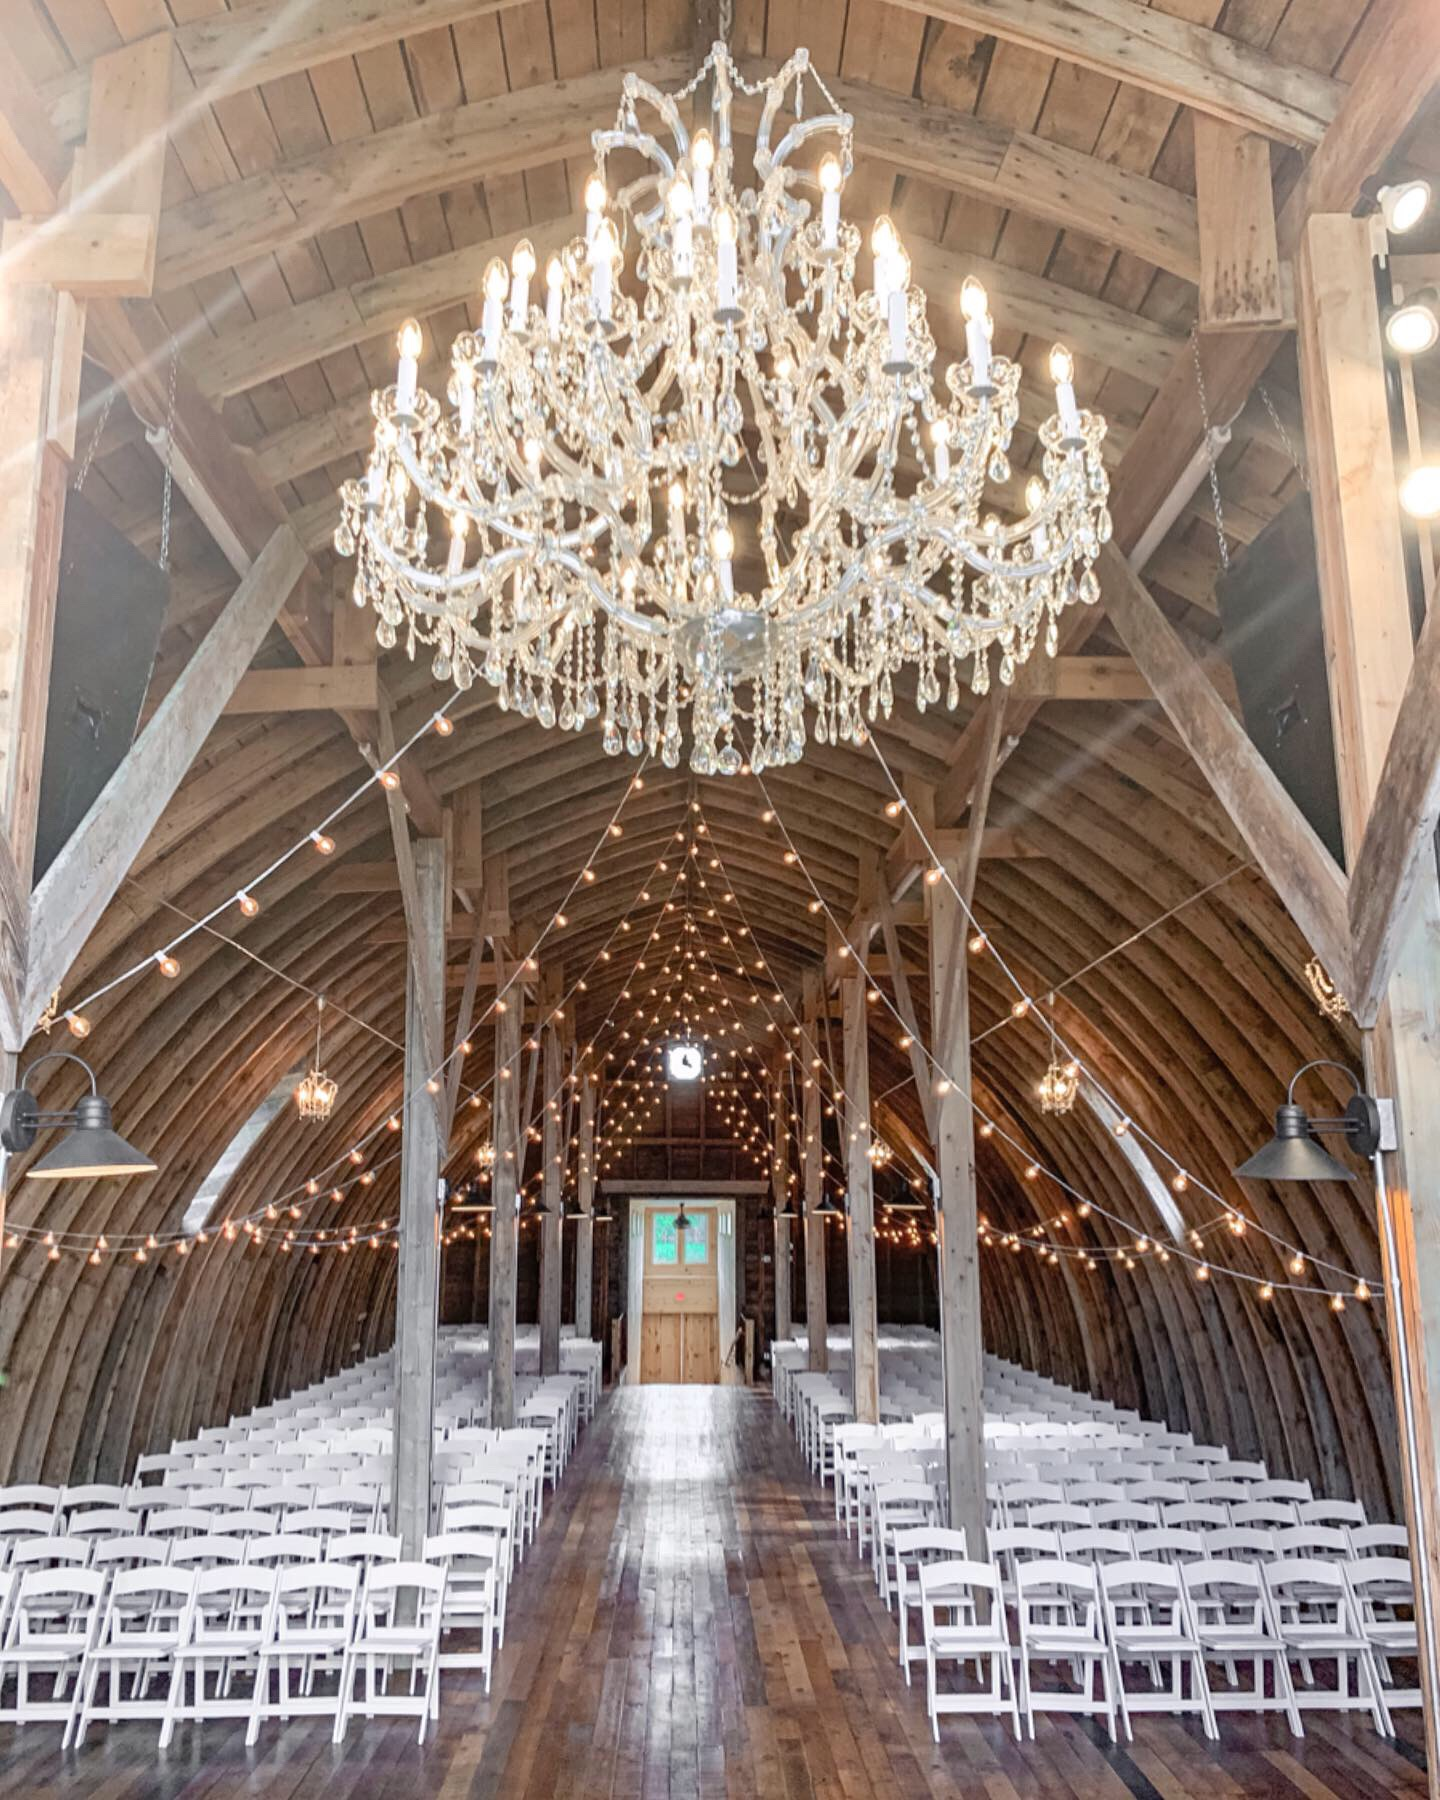 Stone Hill Farm Minnesota Barn Wedding Venue